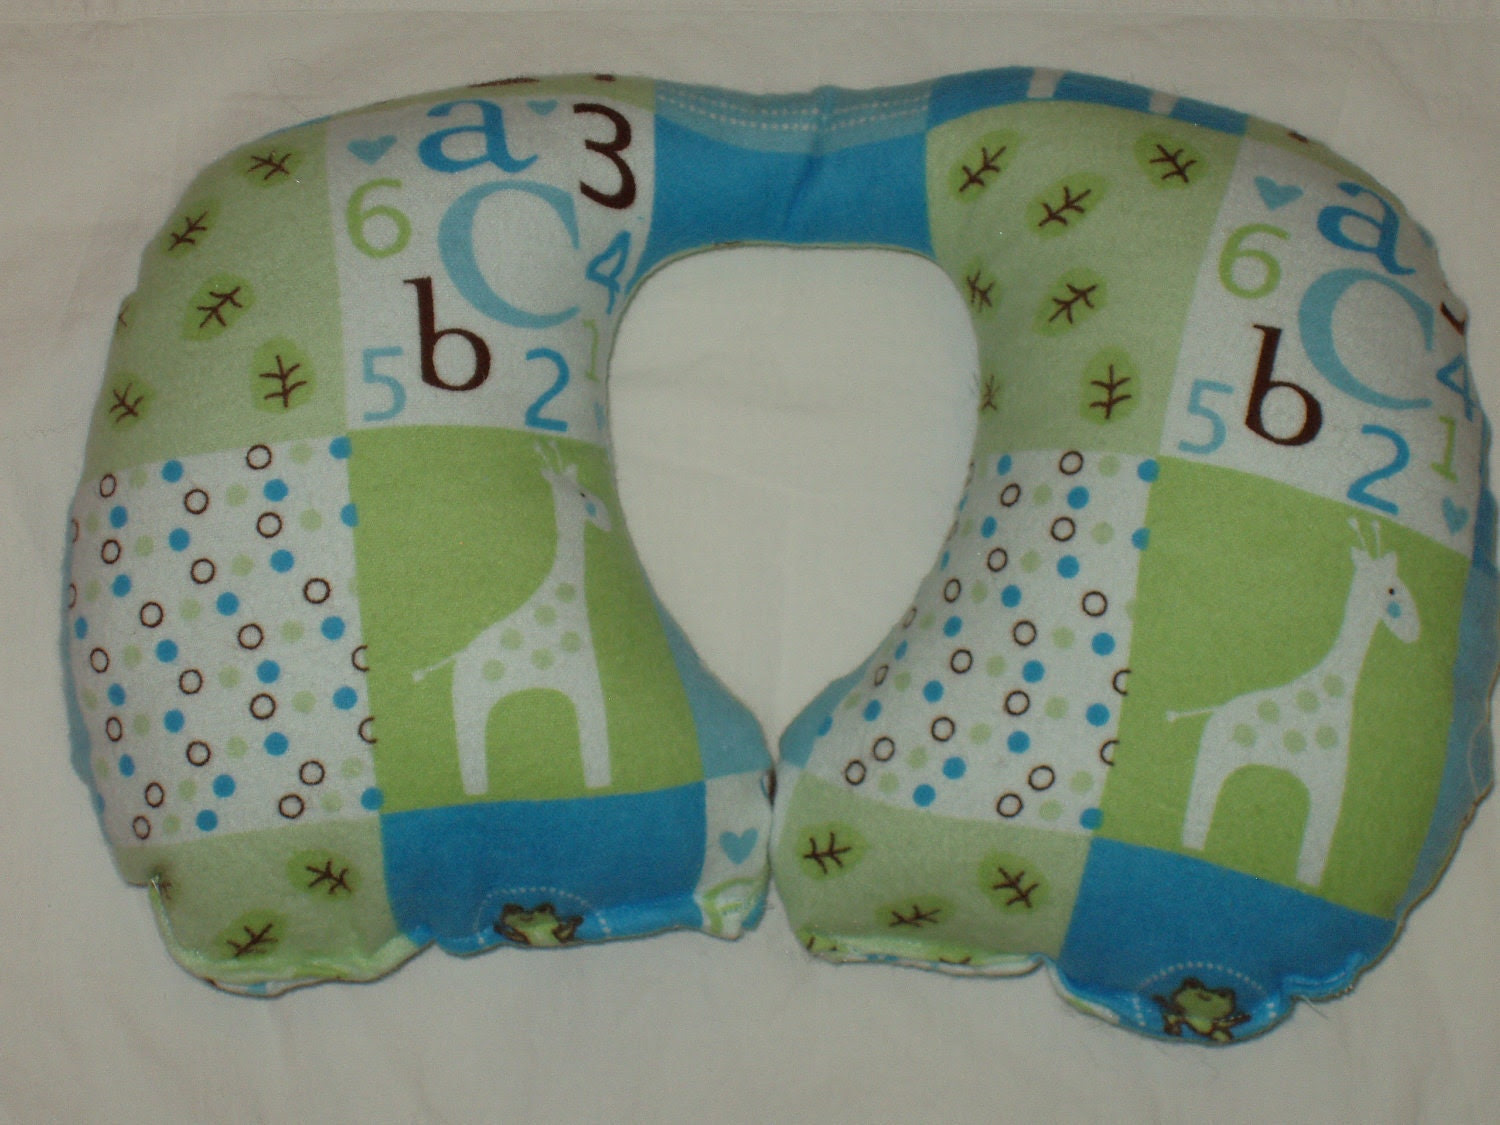 Travel Pillow - Infant Neck Support Car Seat Pillow - Baby Boy